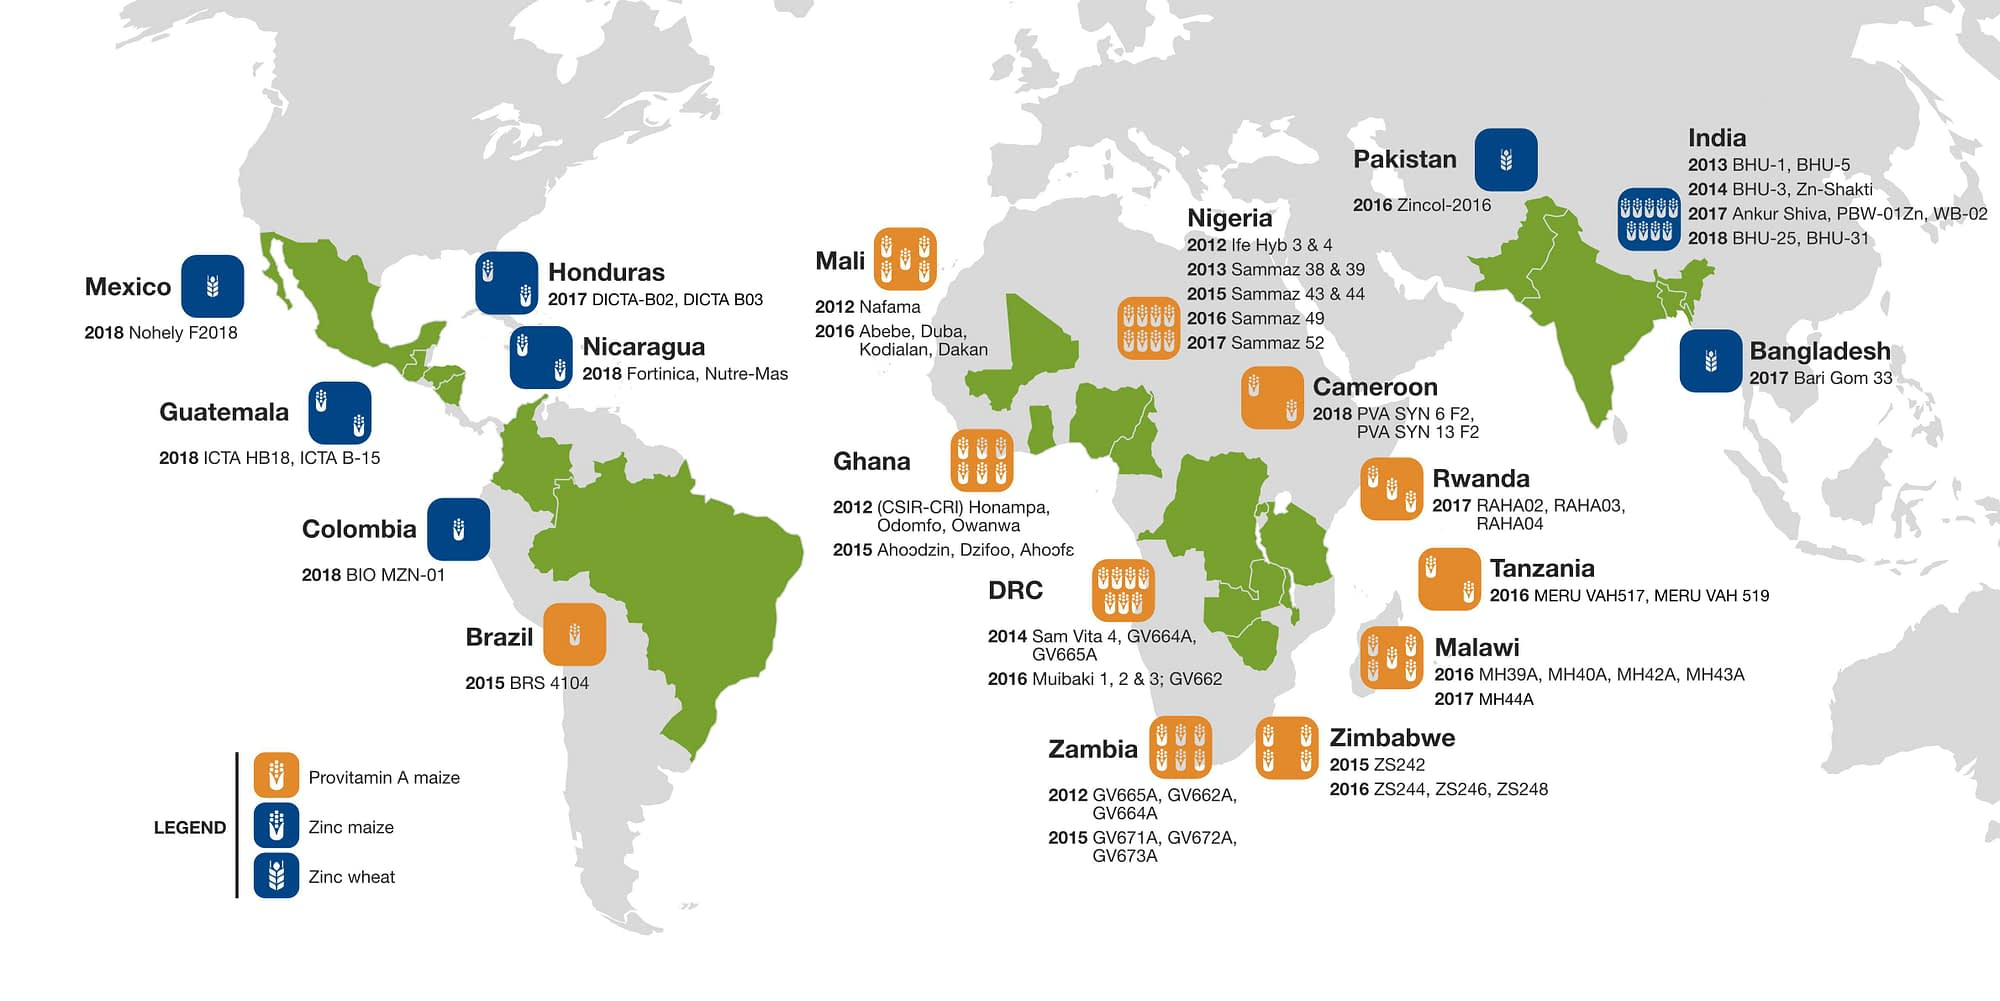 Farmer and consumer interest has grown for some 60 maize and wheat varieties whose grain features enhanced levels of the essential micronutrients zinc and provitamin A, developed and promoted through collaborations of CIMMYT, HarvestPlus, and partners in 19 countries (Map: Sam Storr/CIMMYT).